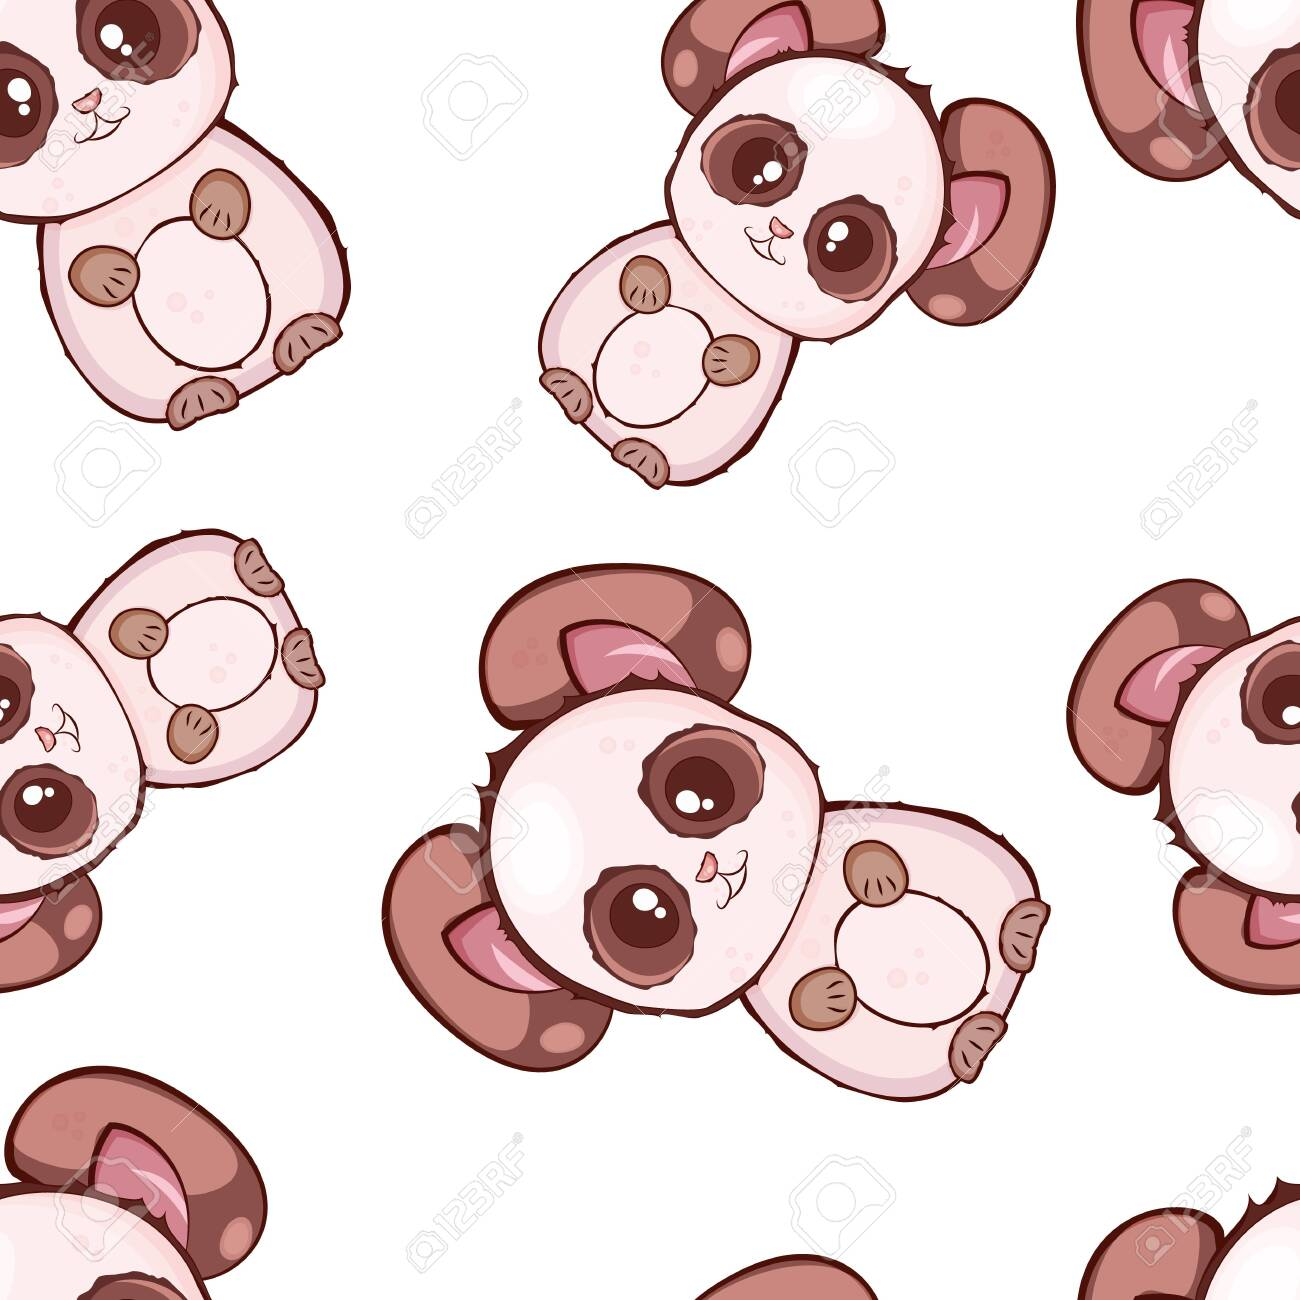 Vector Seamless Pattern With Cute Kawaii Pandas Baby Style Royalty Free Cliparts Vectors And Stock Illustration Image 128636336